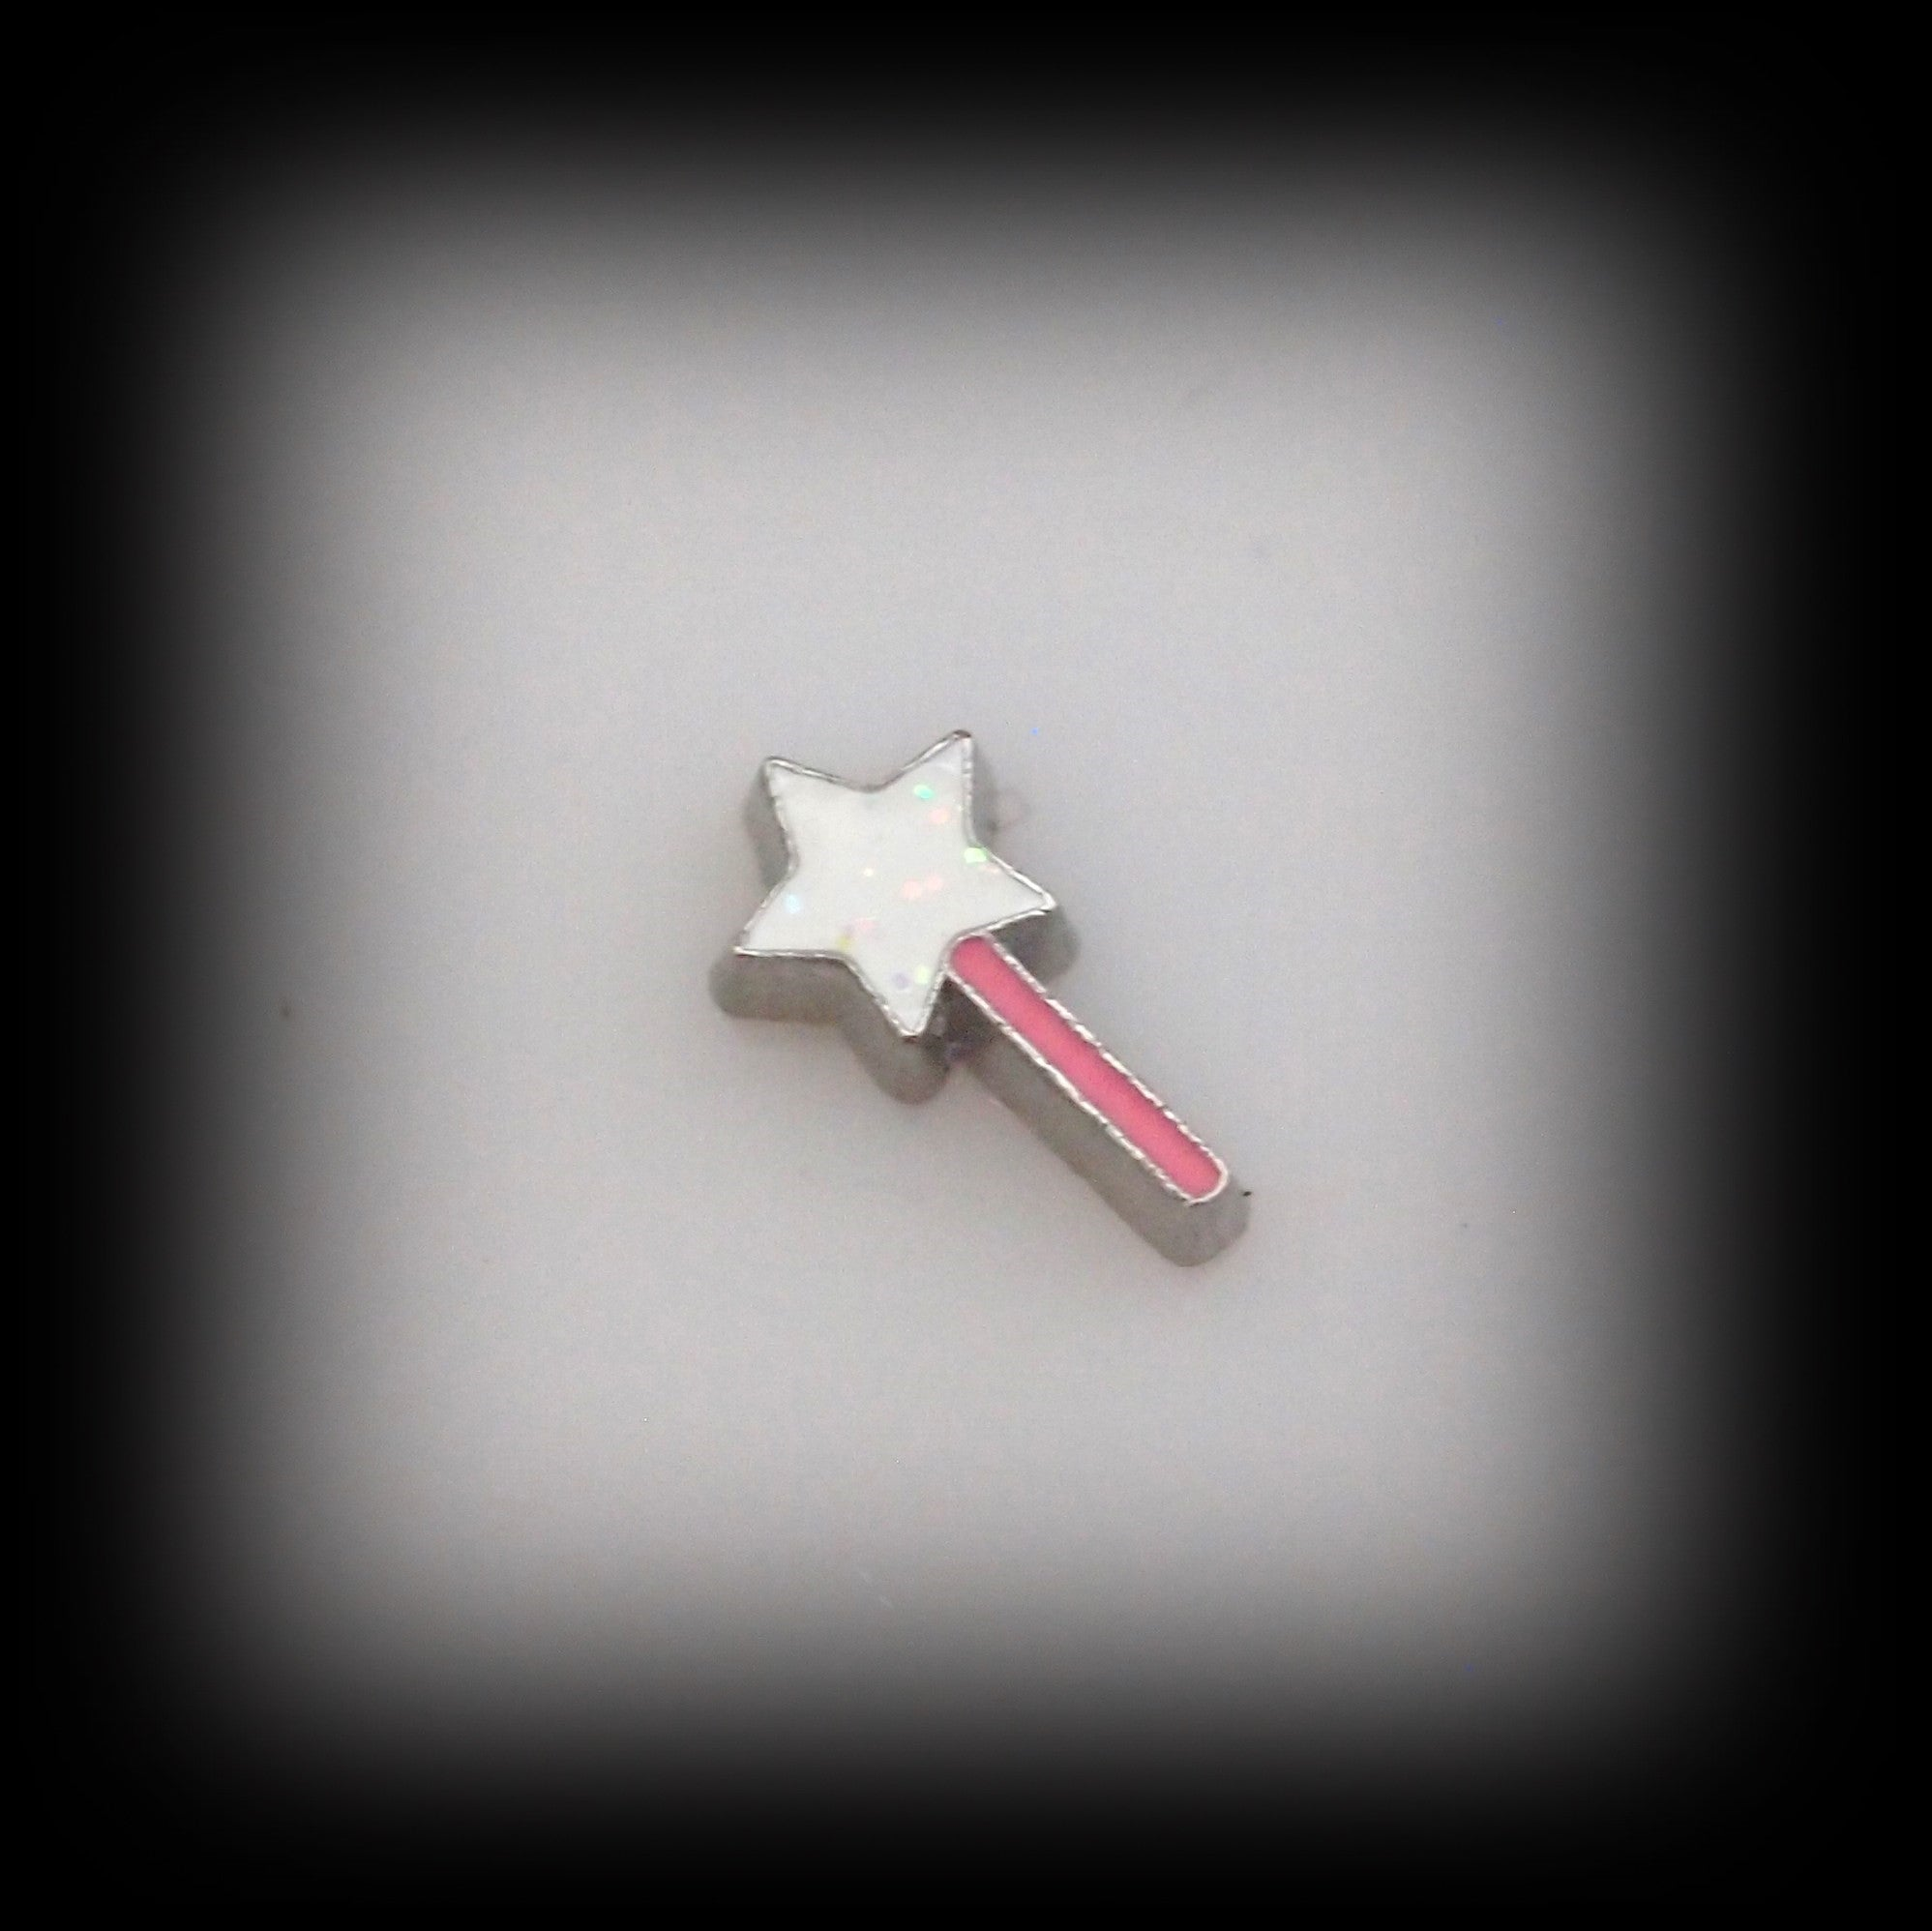 Magic Wand Floating Charm - Find Something Special